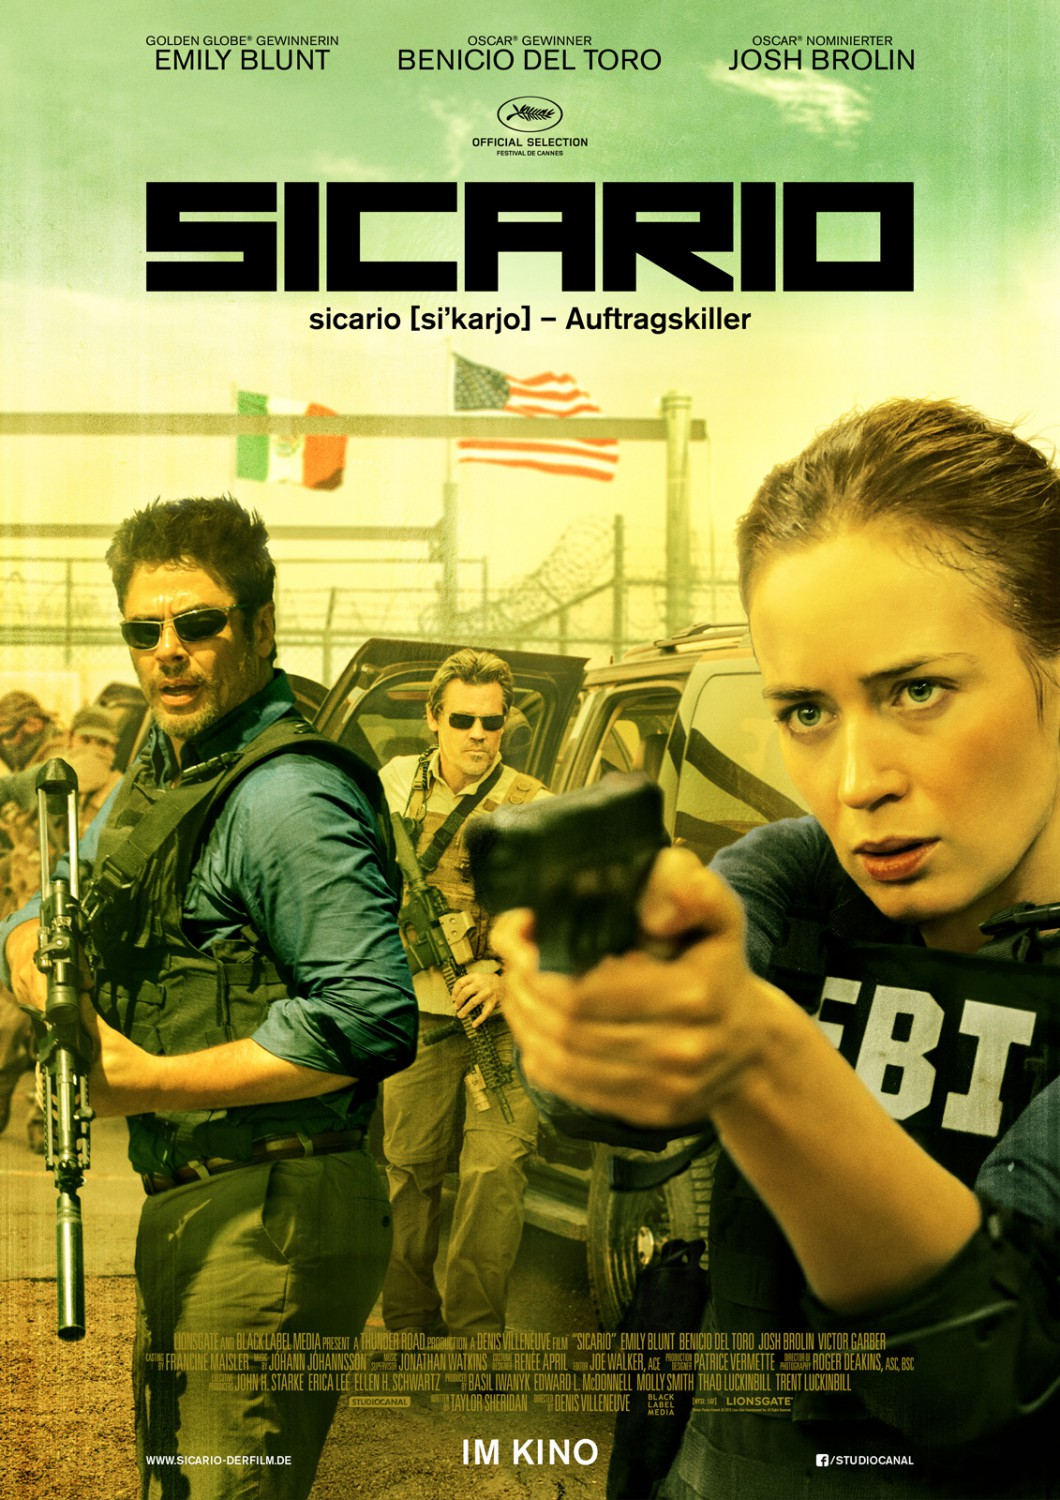 Tierra De Nadie: Sicario (2015) [BrRip 720p] [1 Link] [MEGA]